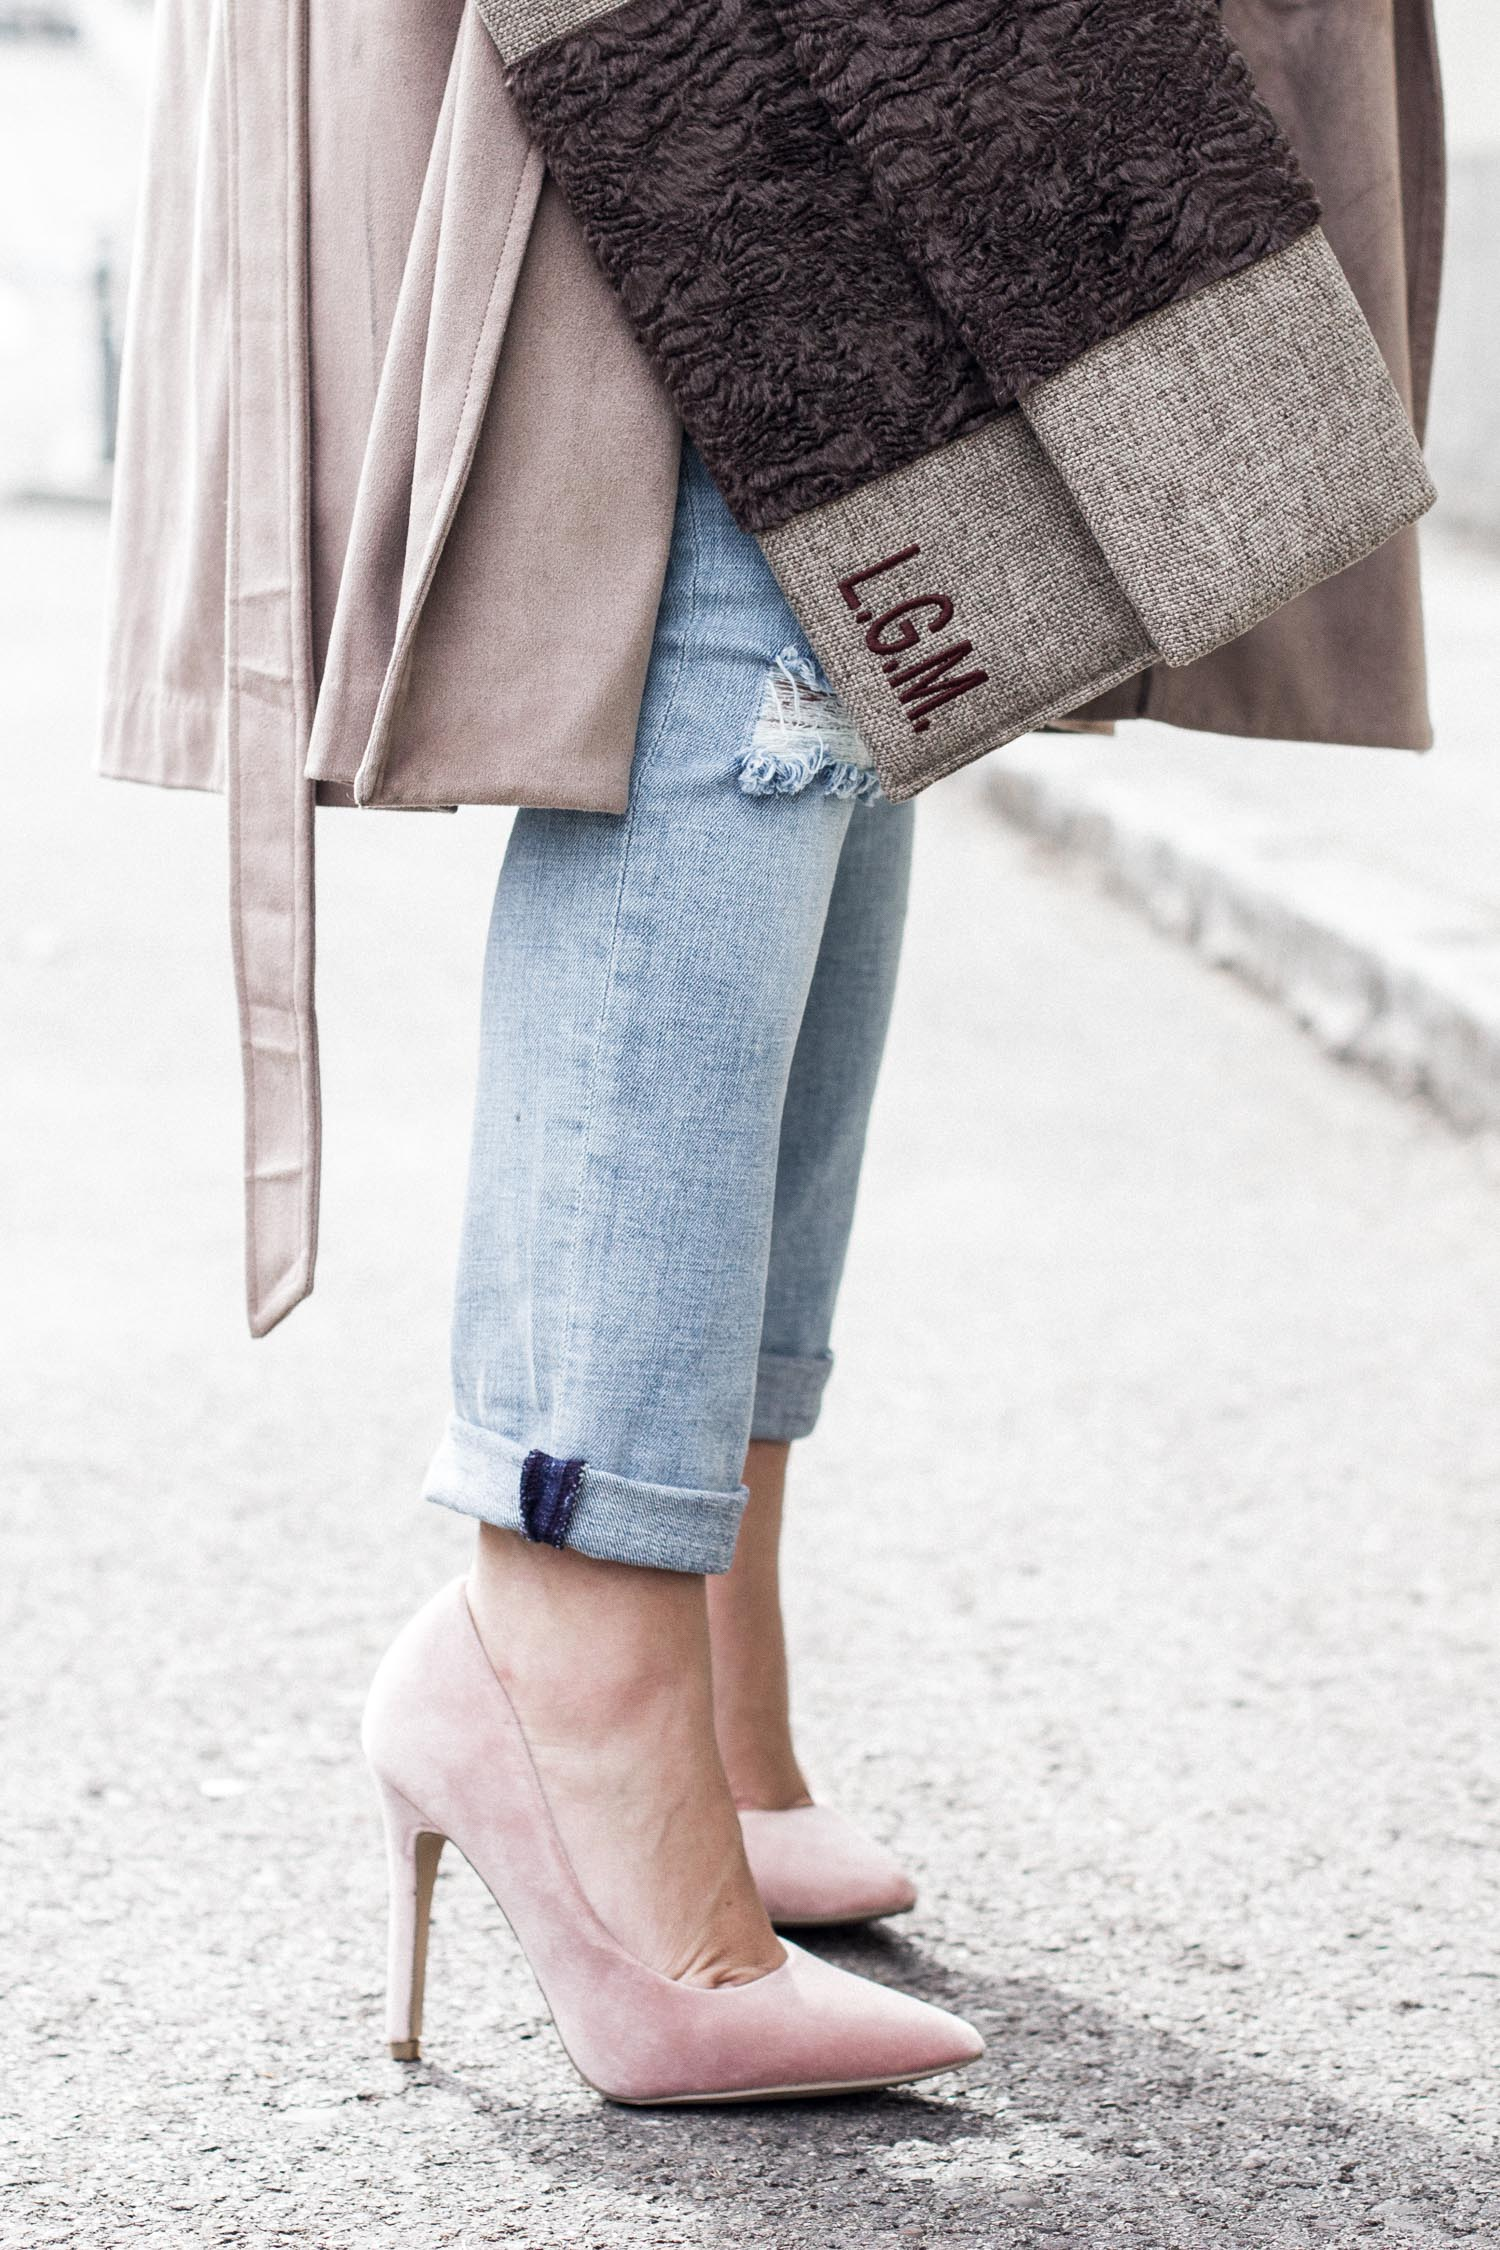 loreto_made_in_style_zara_trench_pink_nude_stilettos_newlook-27